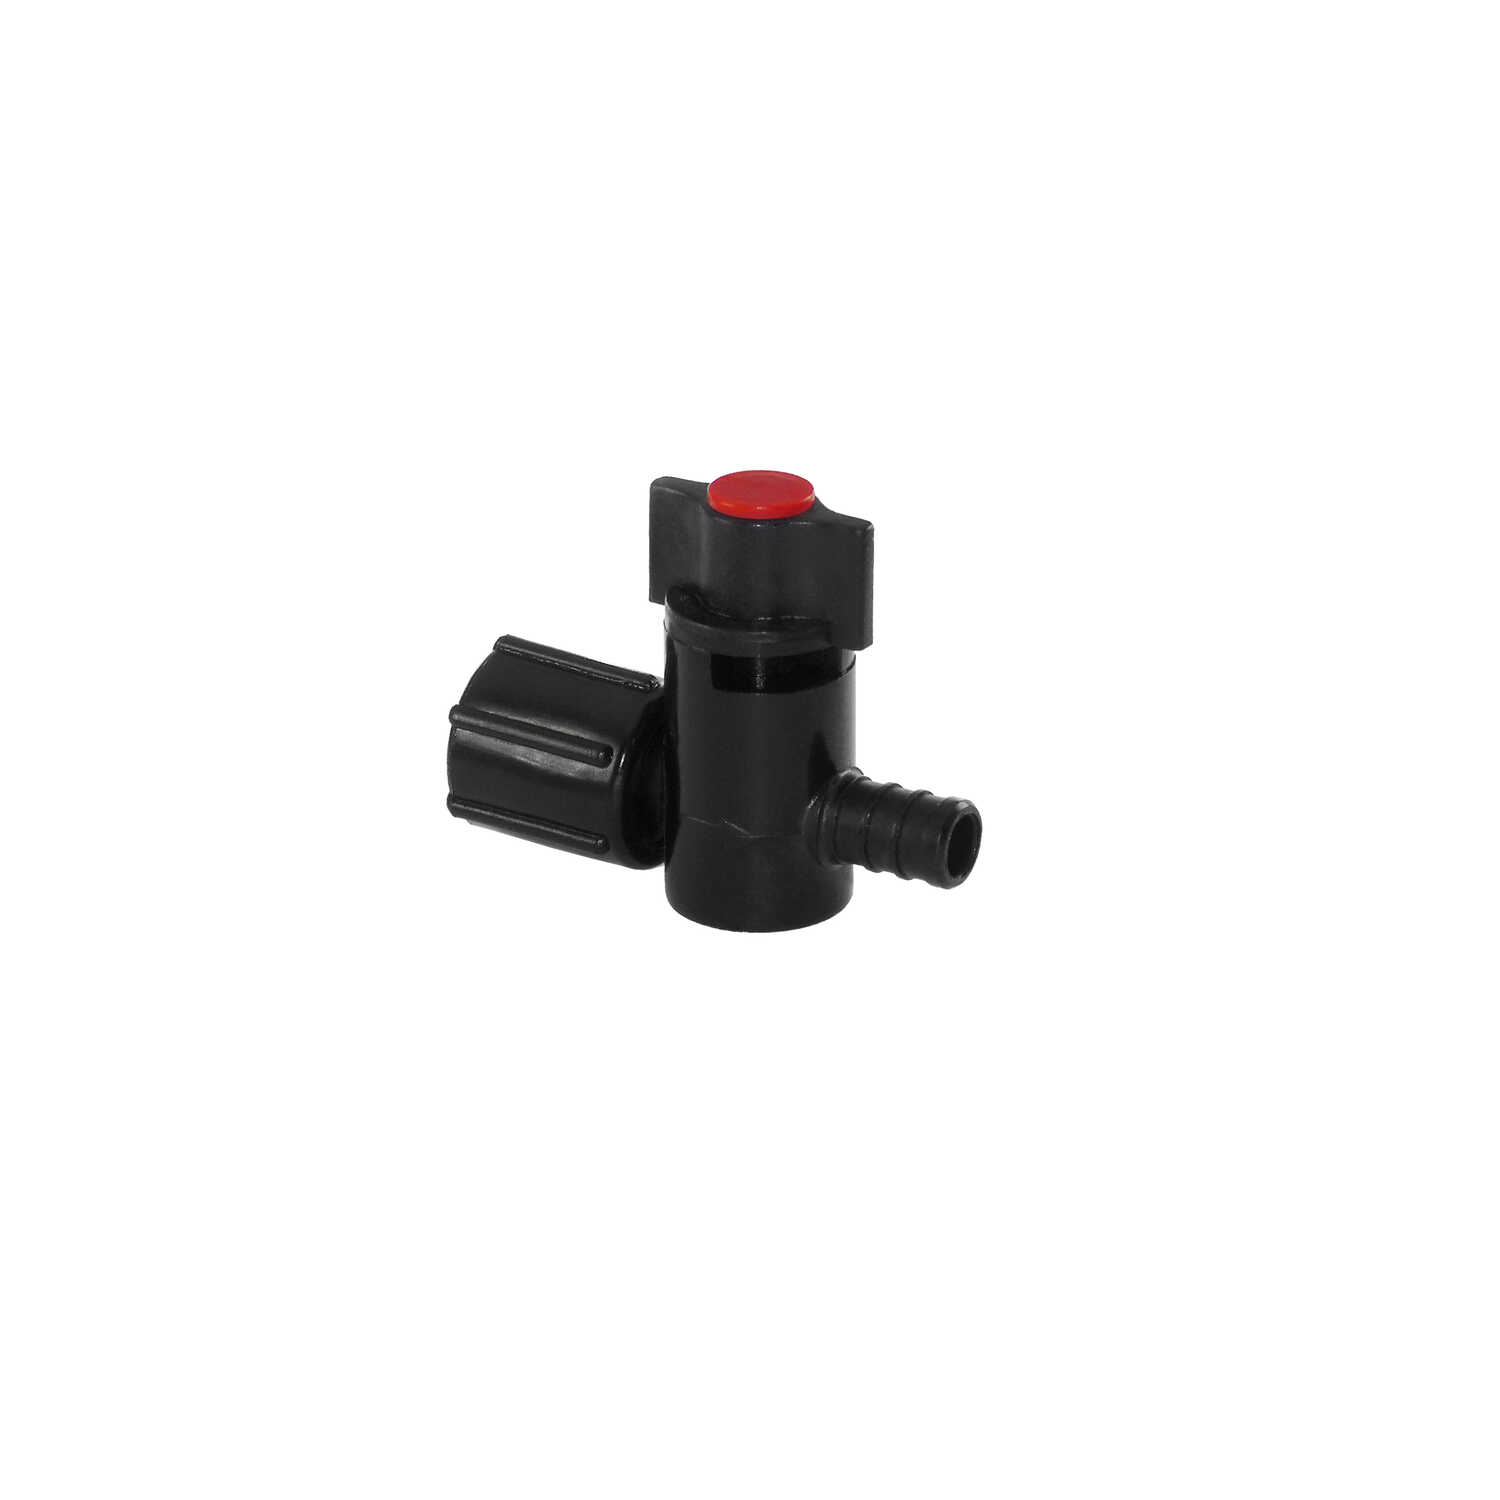 Flair-It  Ecopoly  1/2 in. PEX Barb   x 1/2 in. Dia. FPT  Swivel Valve